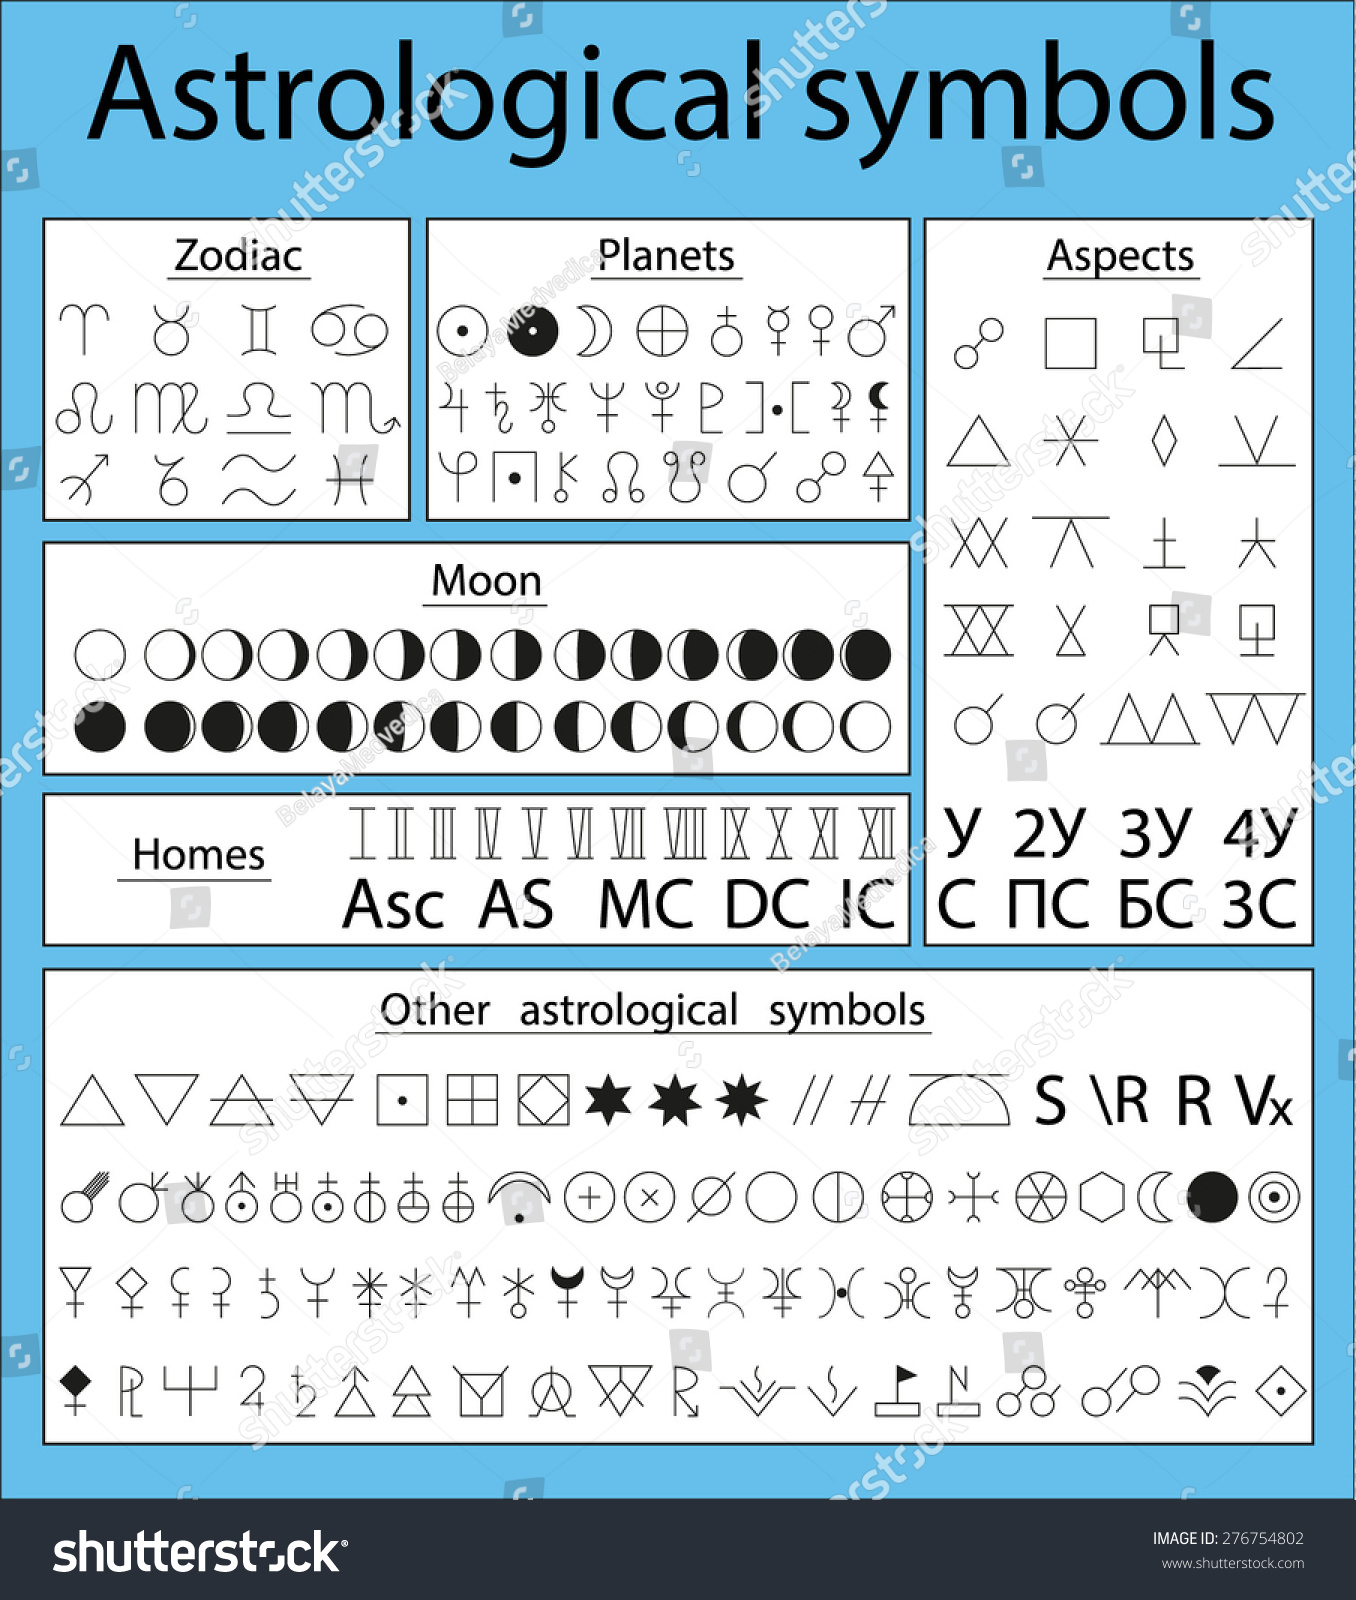 Astrological Symbols Planets Zodiac Aspects Moon Stock Vector